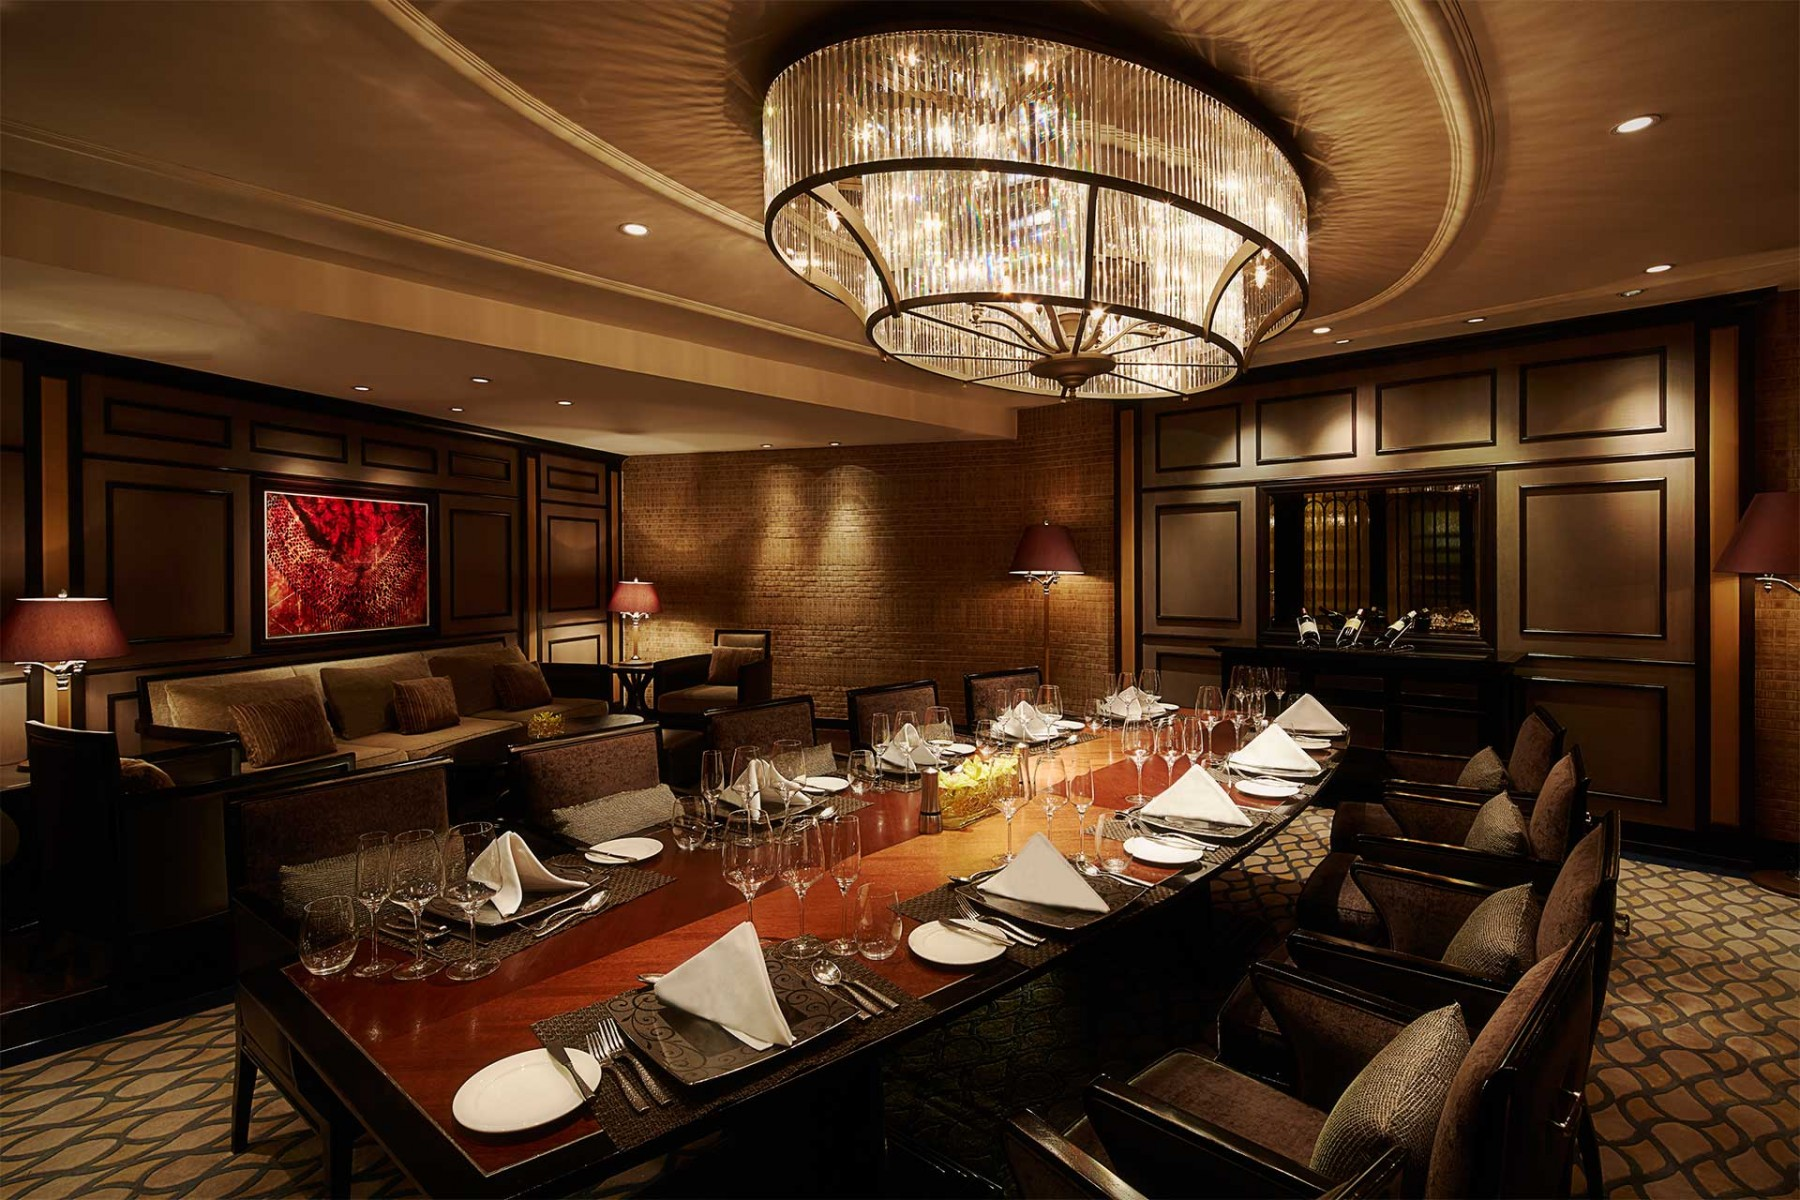 Restaurant With Private Rooms In Manila